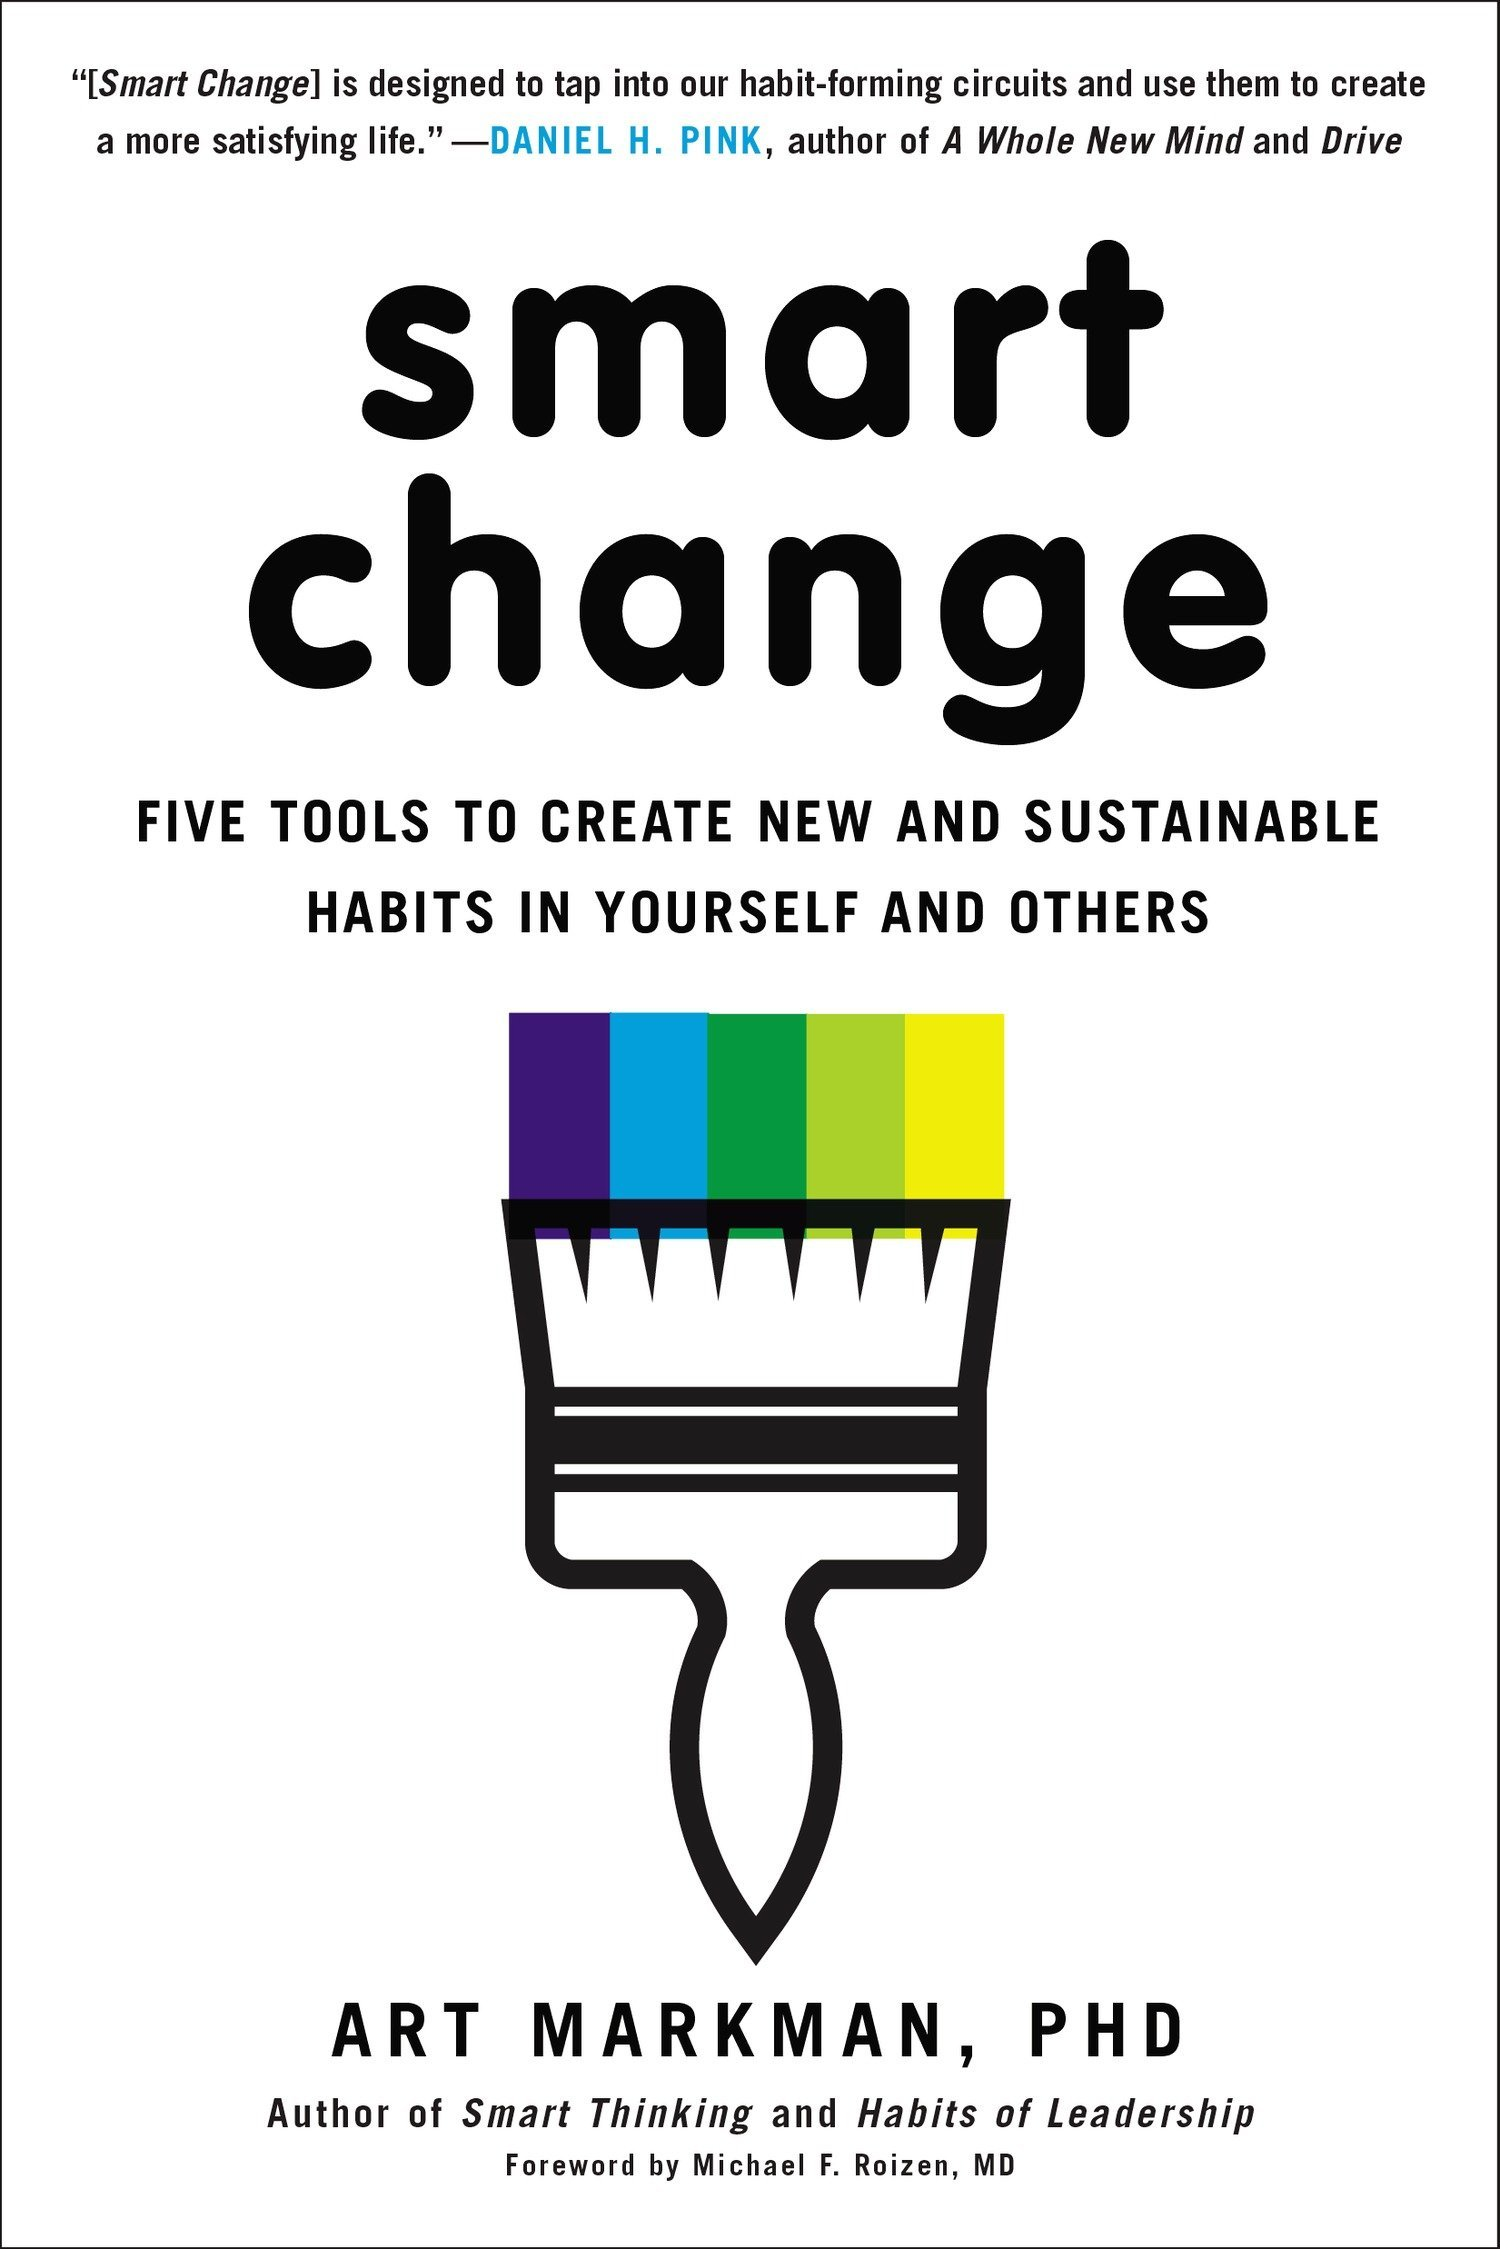 Smart Change: Five Tools to Create New and Sustainable Habits in Yourself  and Others: Art Markman PhD: 9780399164125: Amazon.com: Books